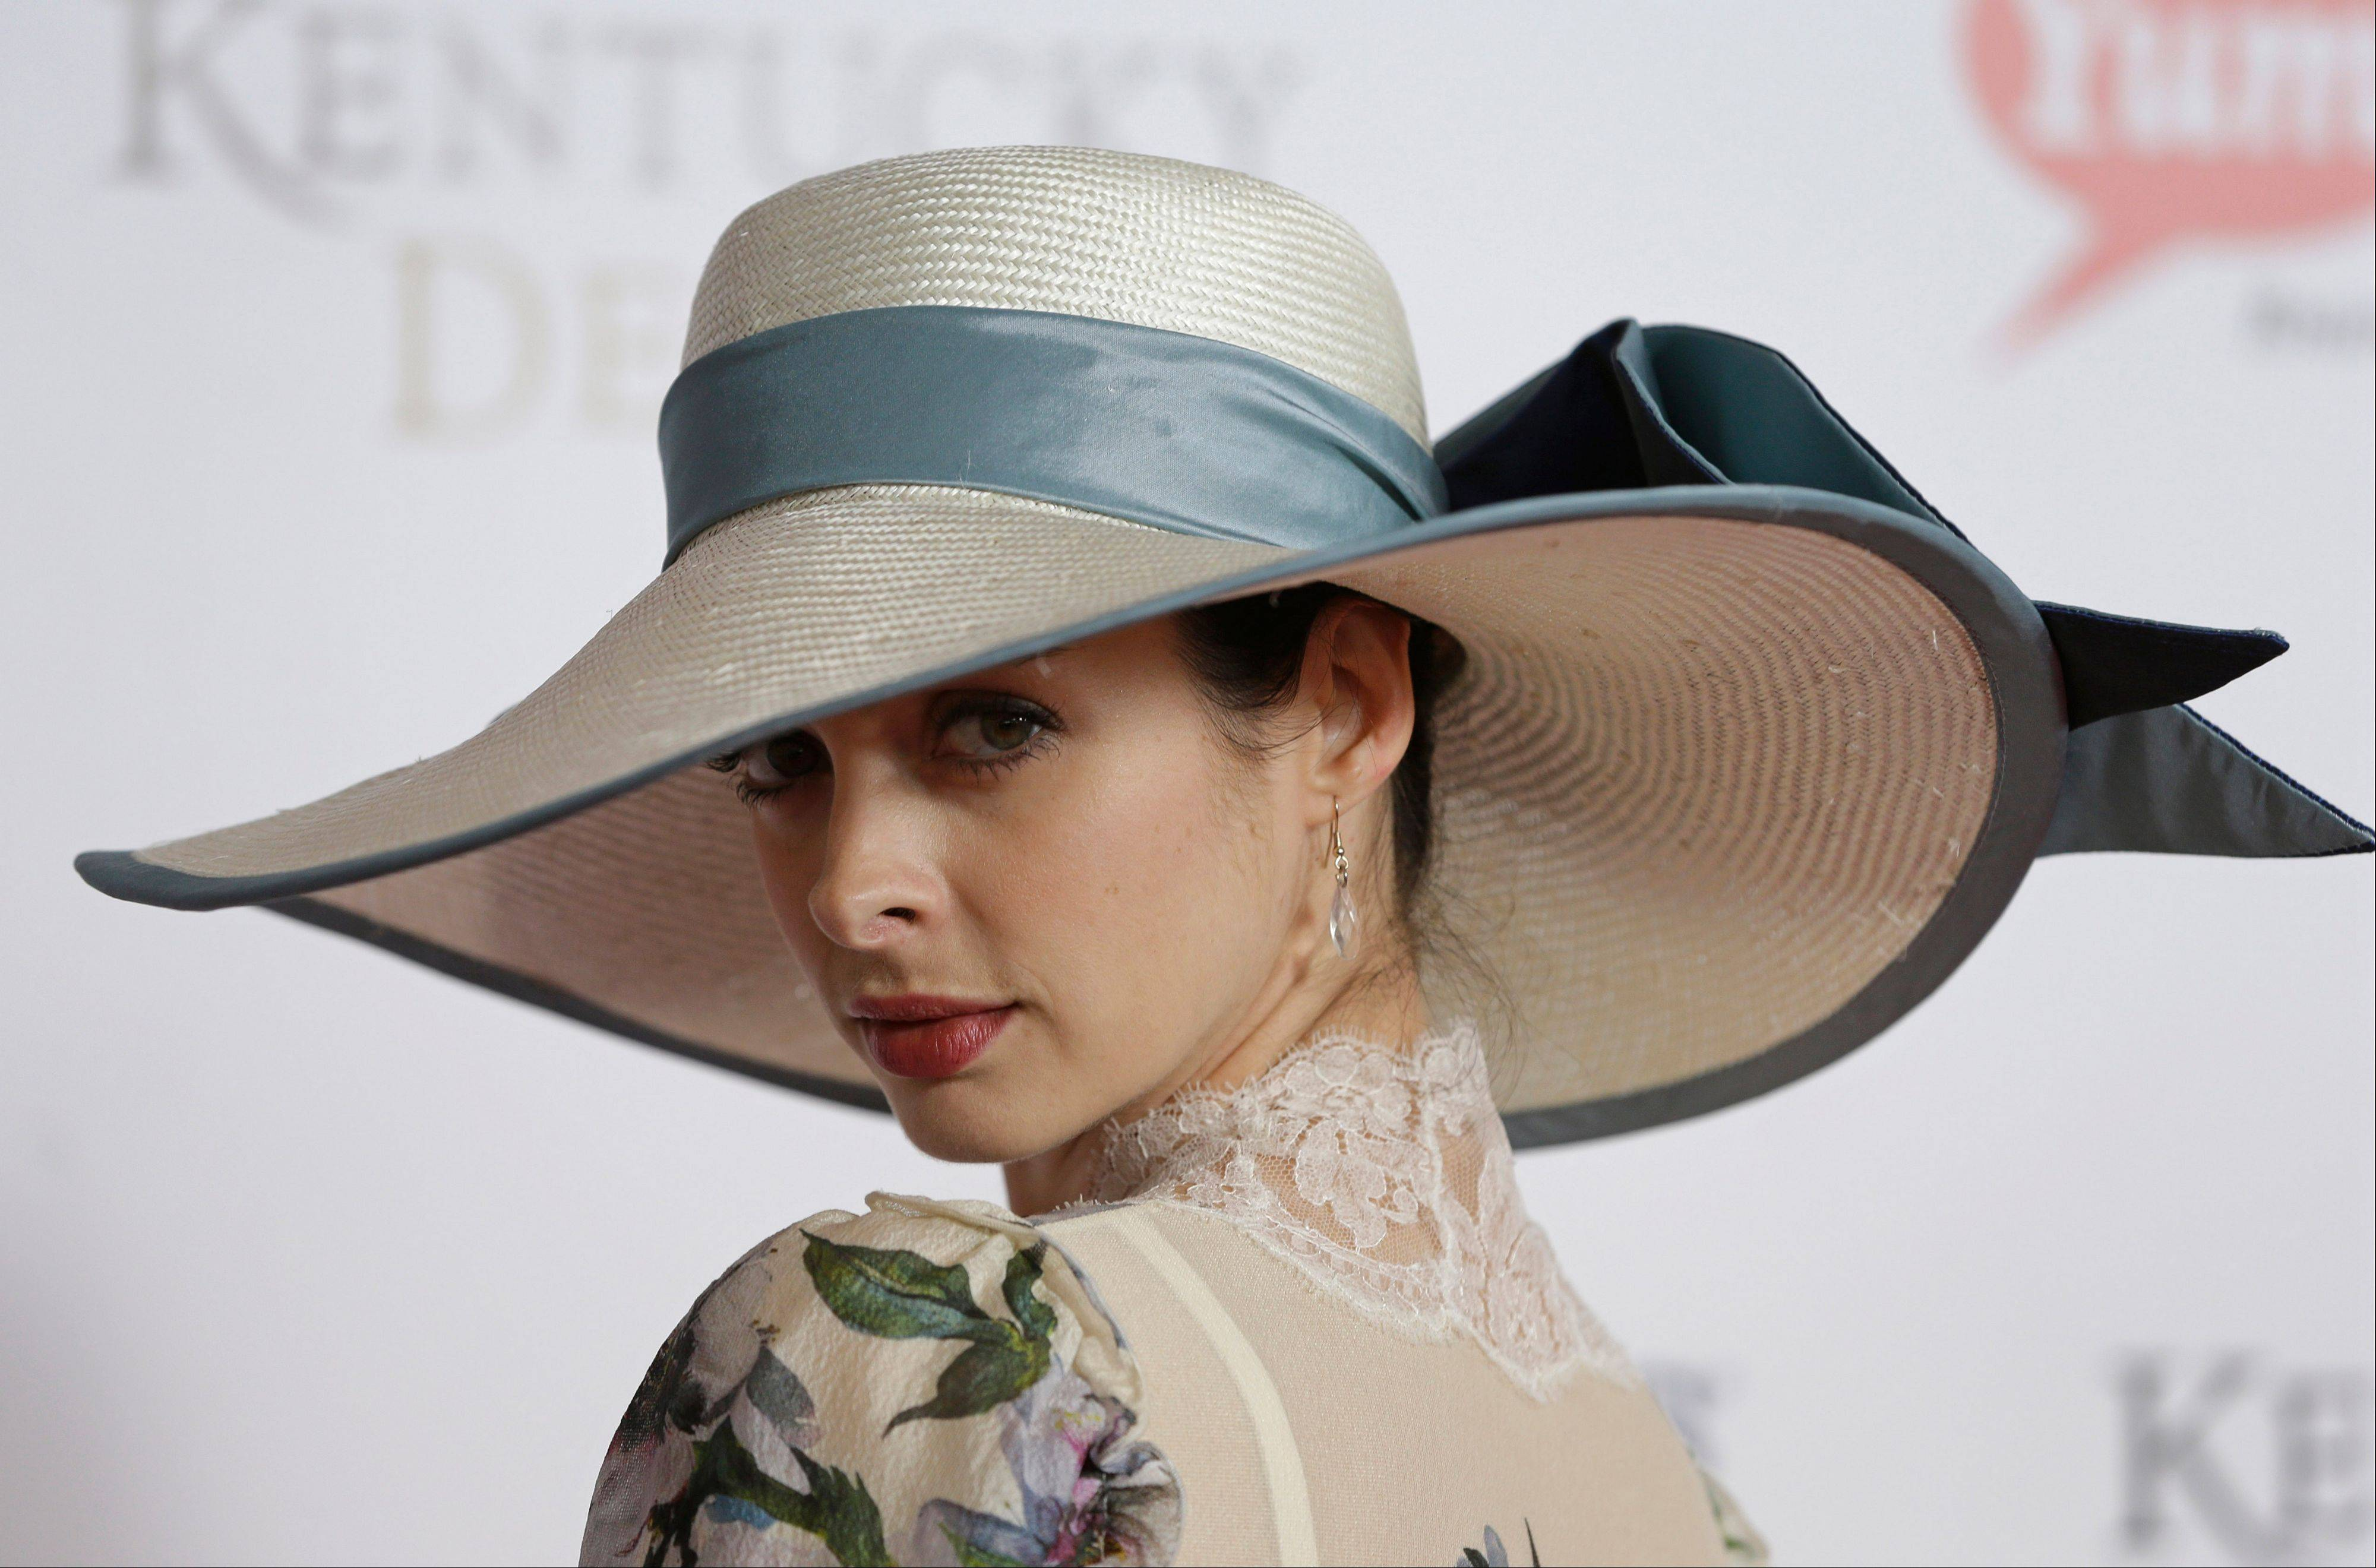 Actress Kyrsten Ritter arrives to attend the 139th Kentucky Derby at Churchill Downs Saturday.